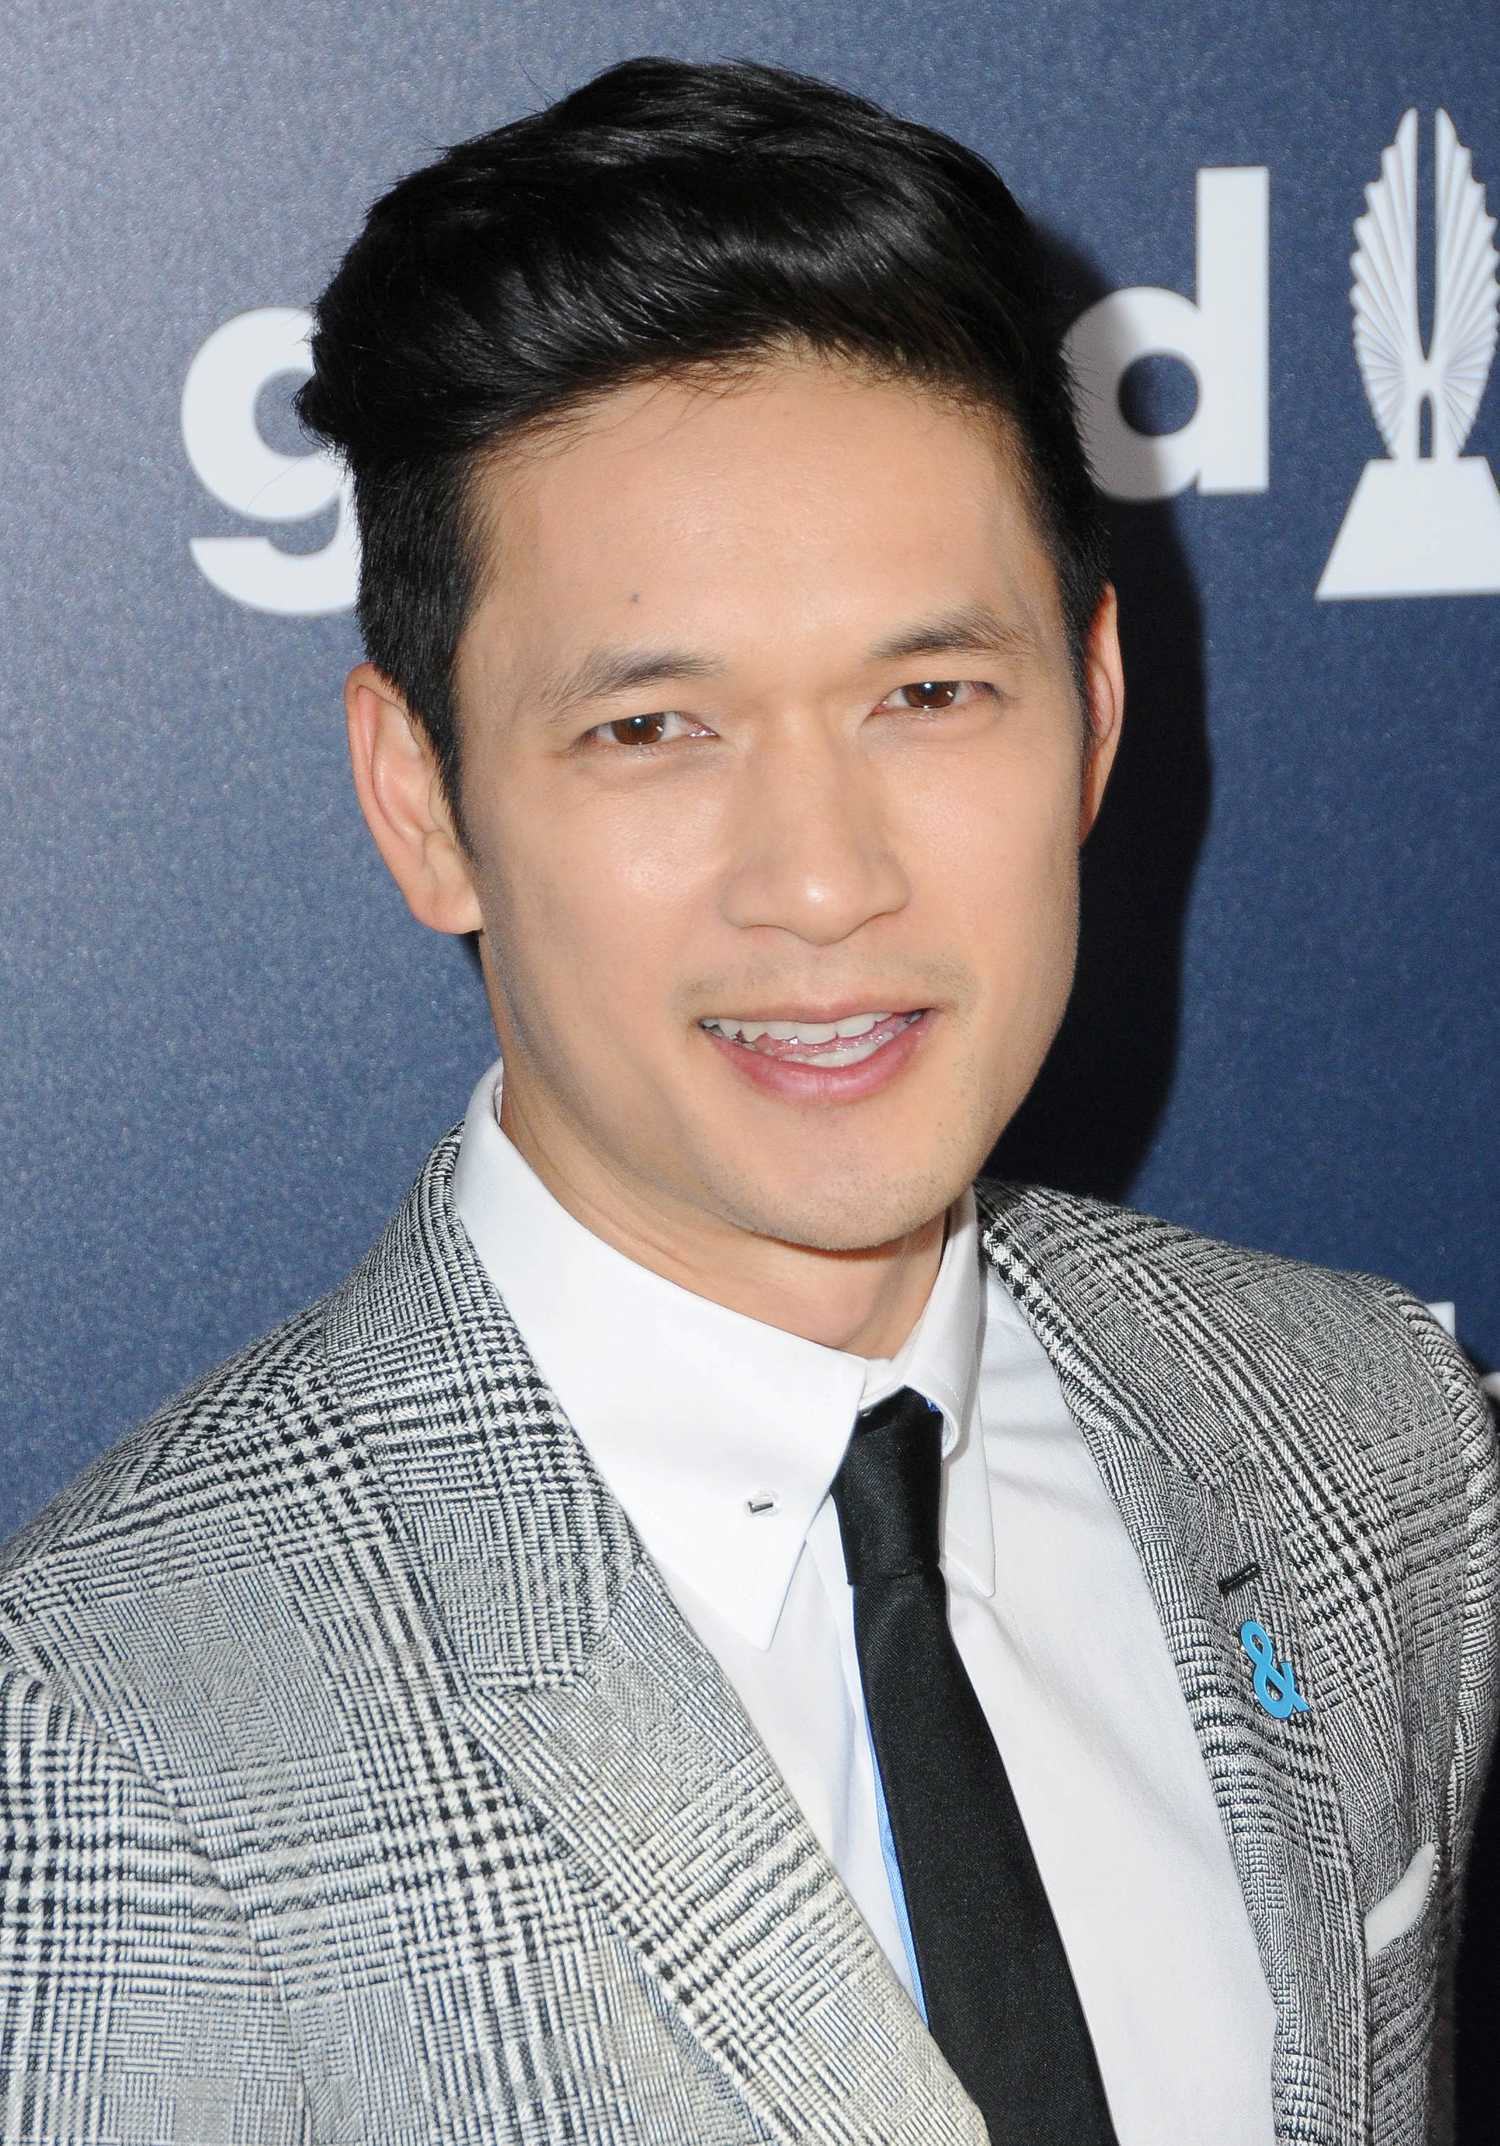 Site, with harry shum jr seems remarkable